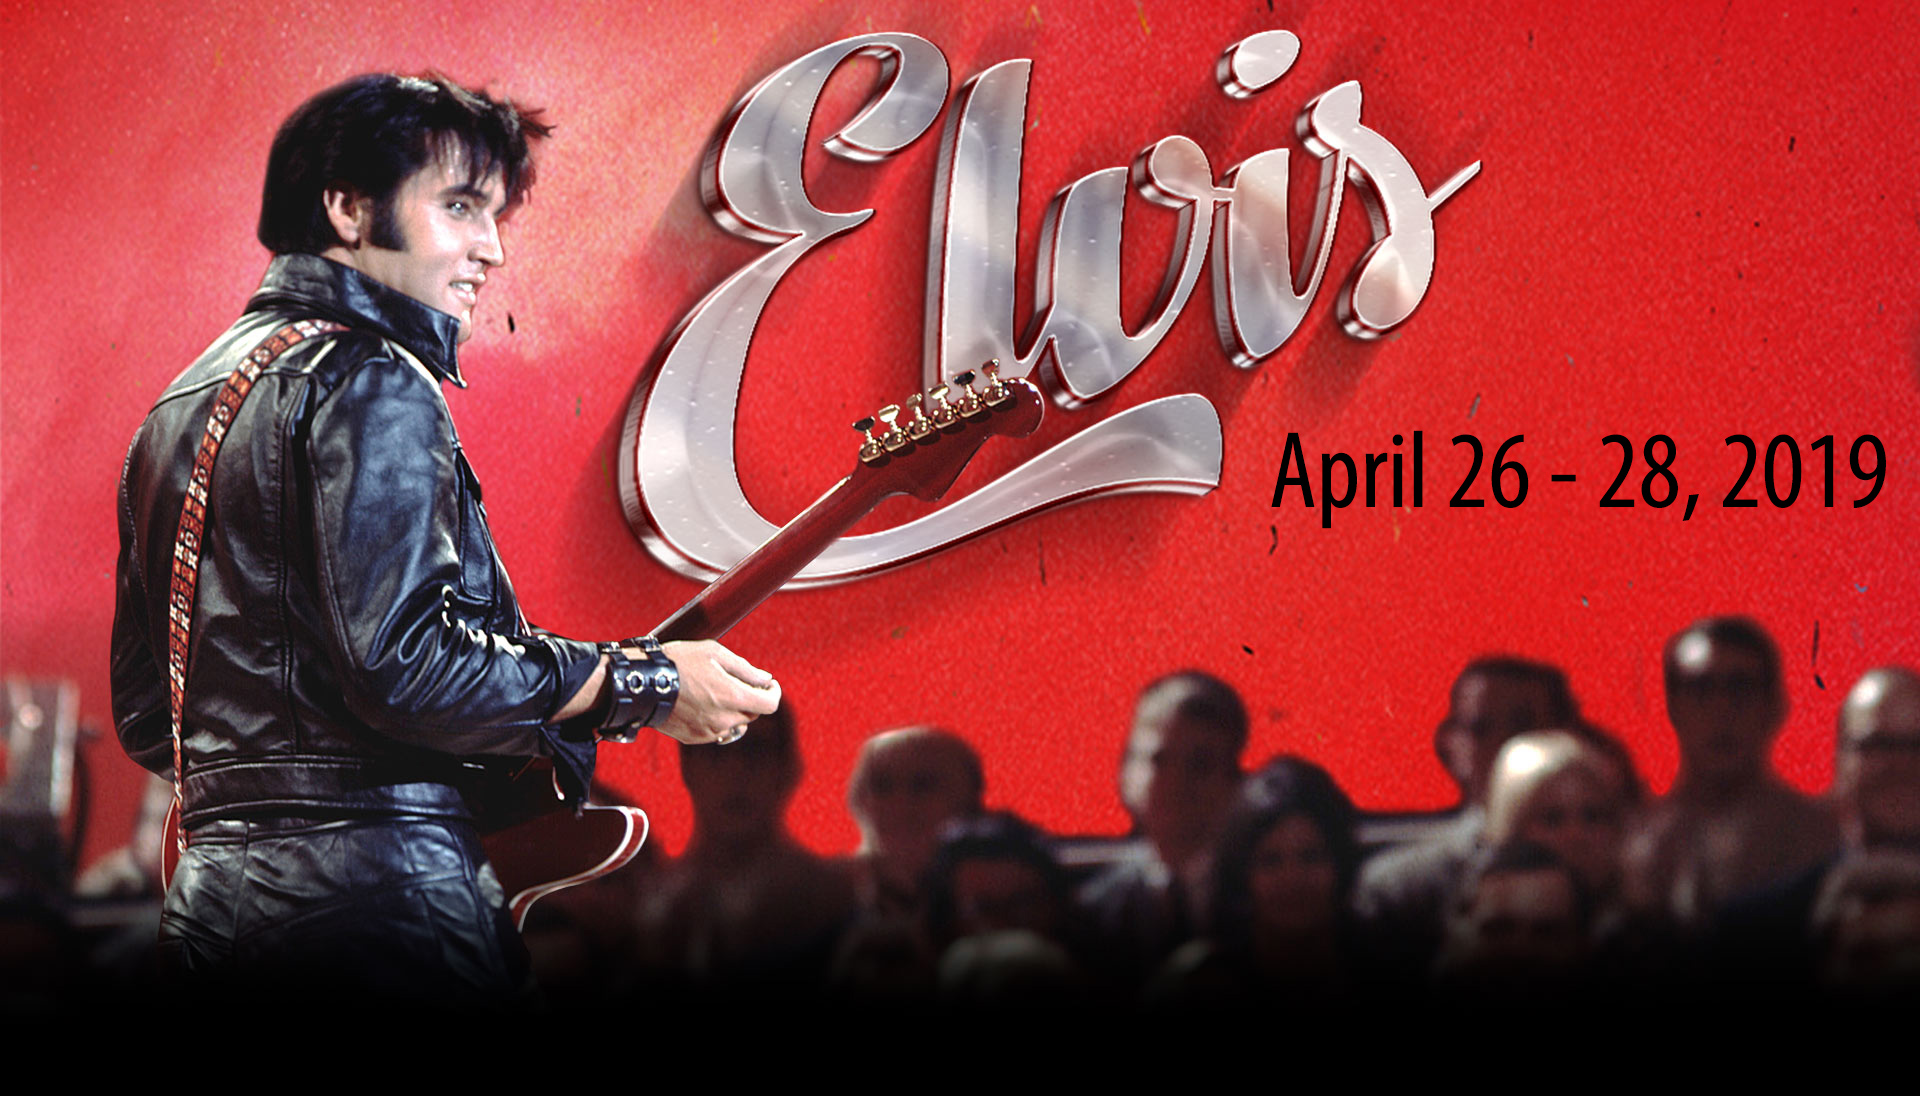 Niagara Falls Elvis Festival playing at the Greg Frewin Theatre - Friday April 26th - Sunday April 28th, 2019